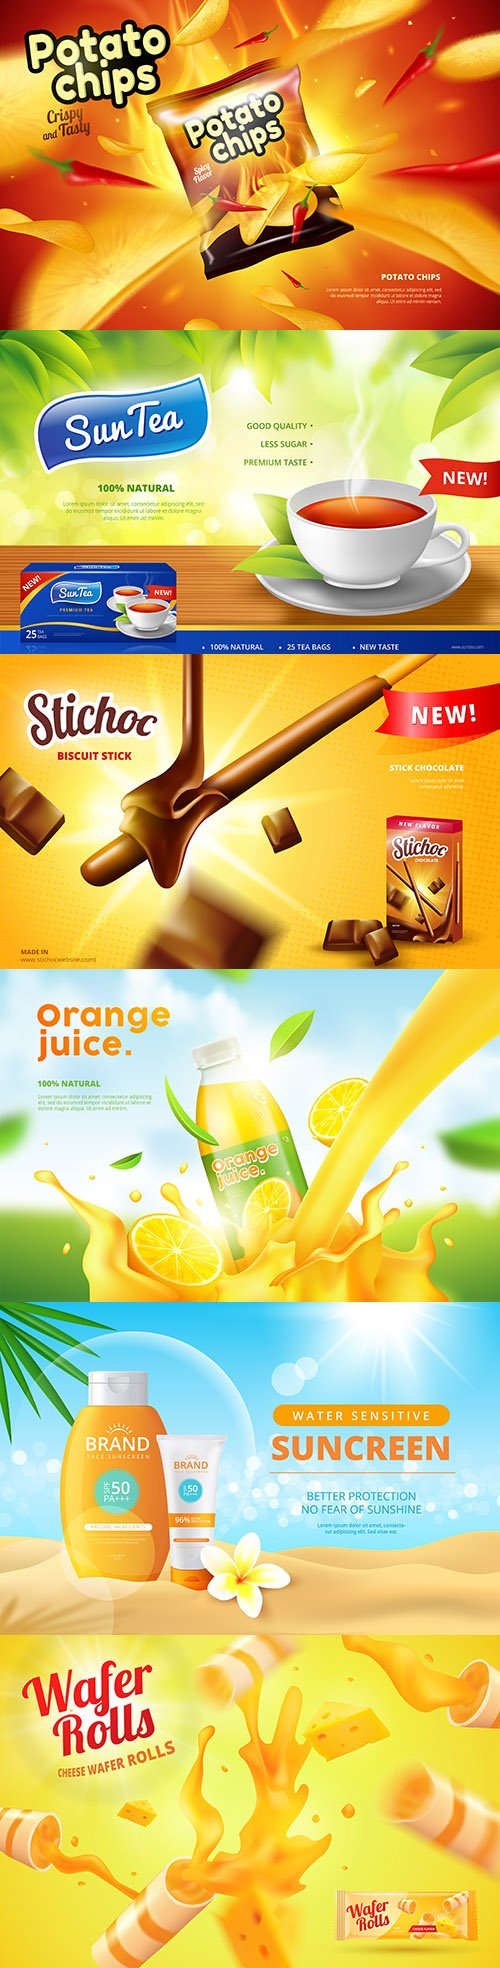 Products and beverages advertising template design